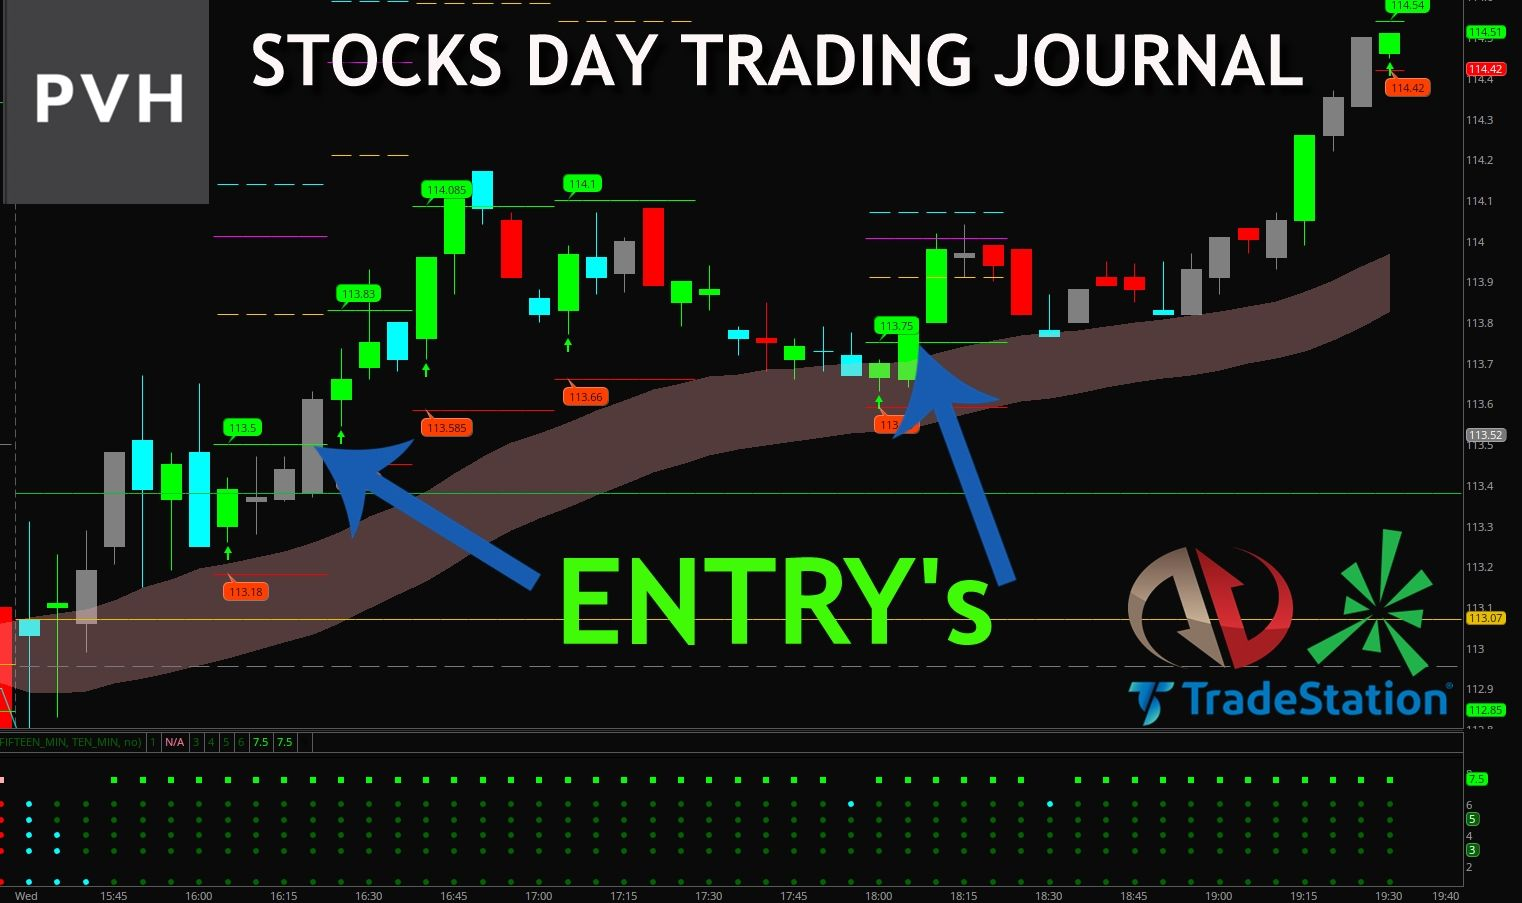 Sharetweetgoogle Linkedinstocks Day Trading Journal For Pvh Using